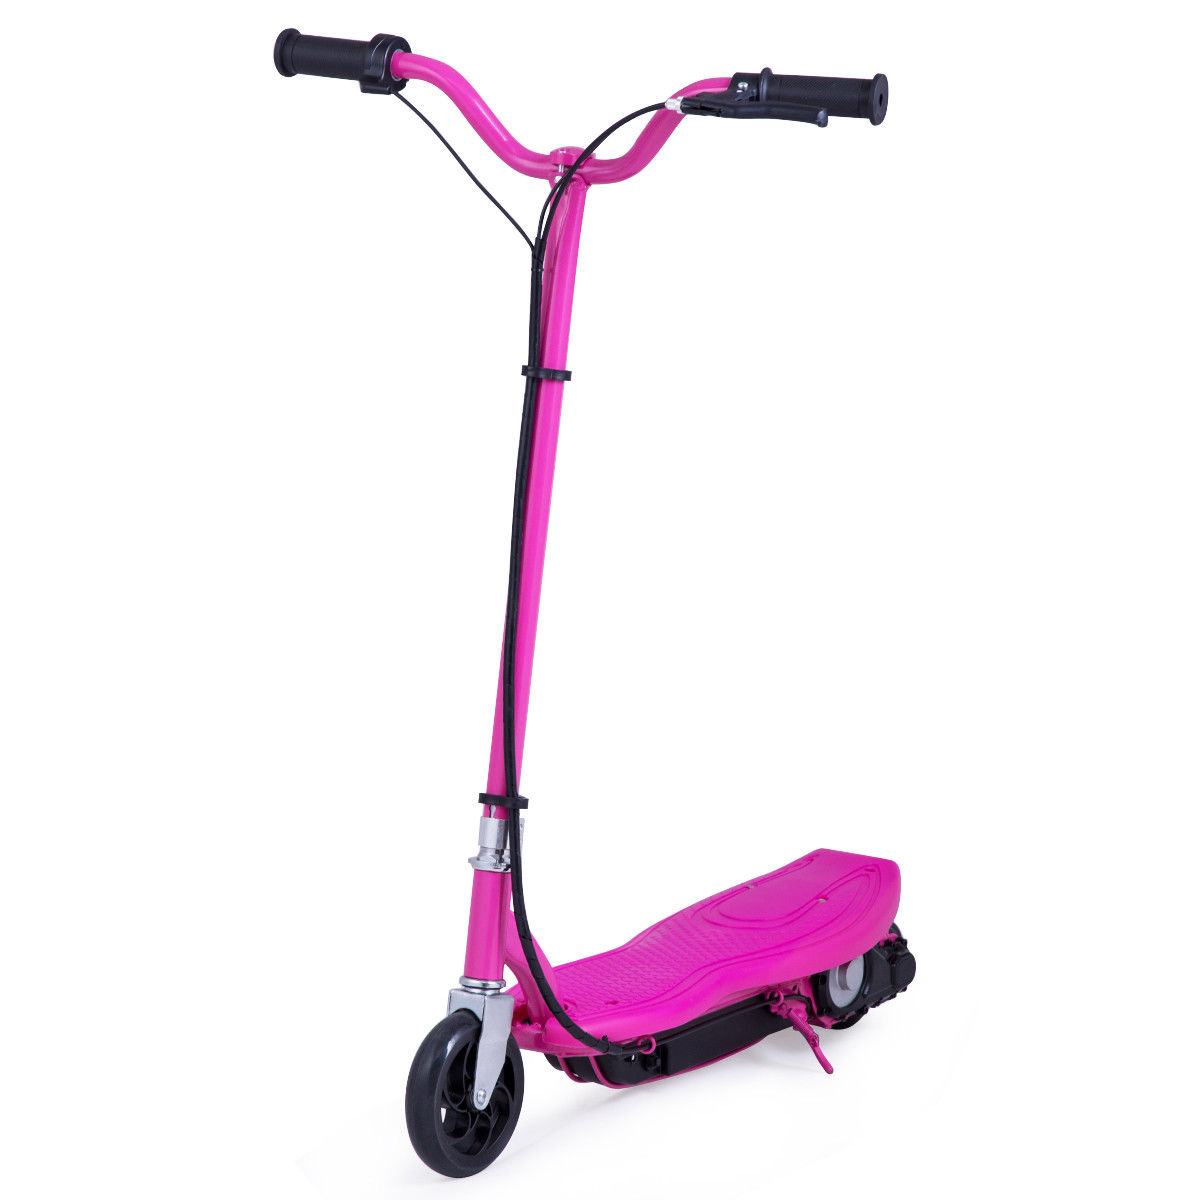 Gymax Rechargeable Electric Scooter 24 Volt Motorized Ride On Outdoor For Teens Rose by Gymax